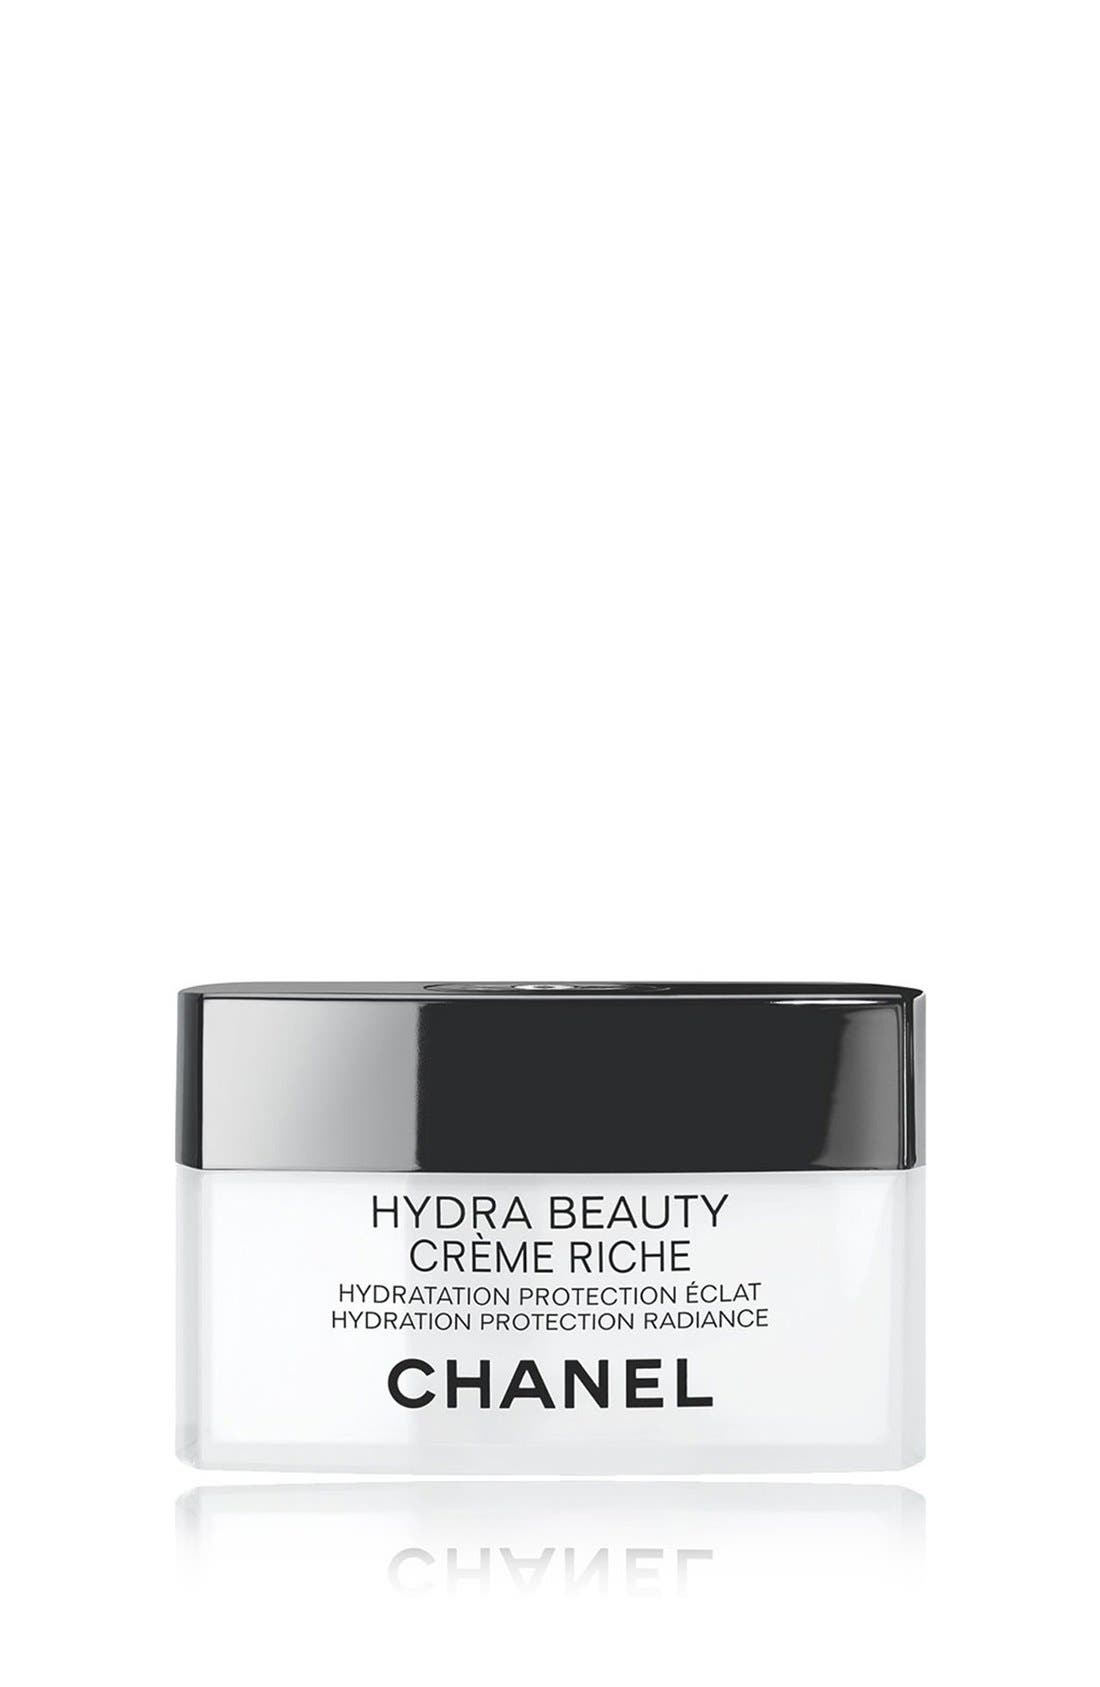 CHANEL HYDRA BEAUTY CRÈME RICHE 